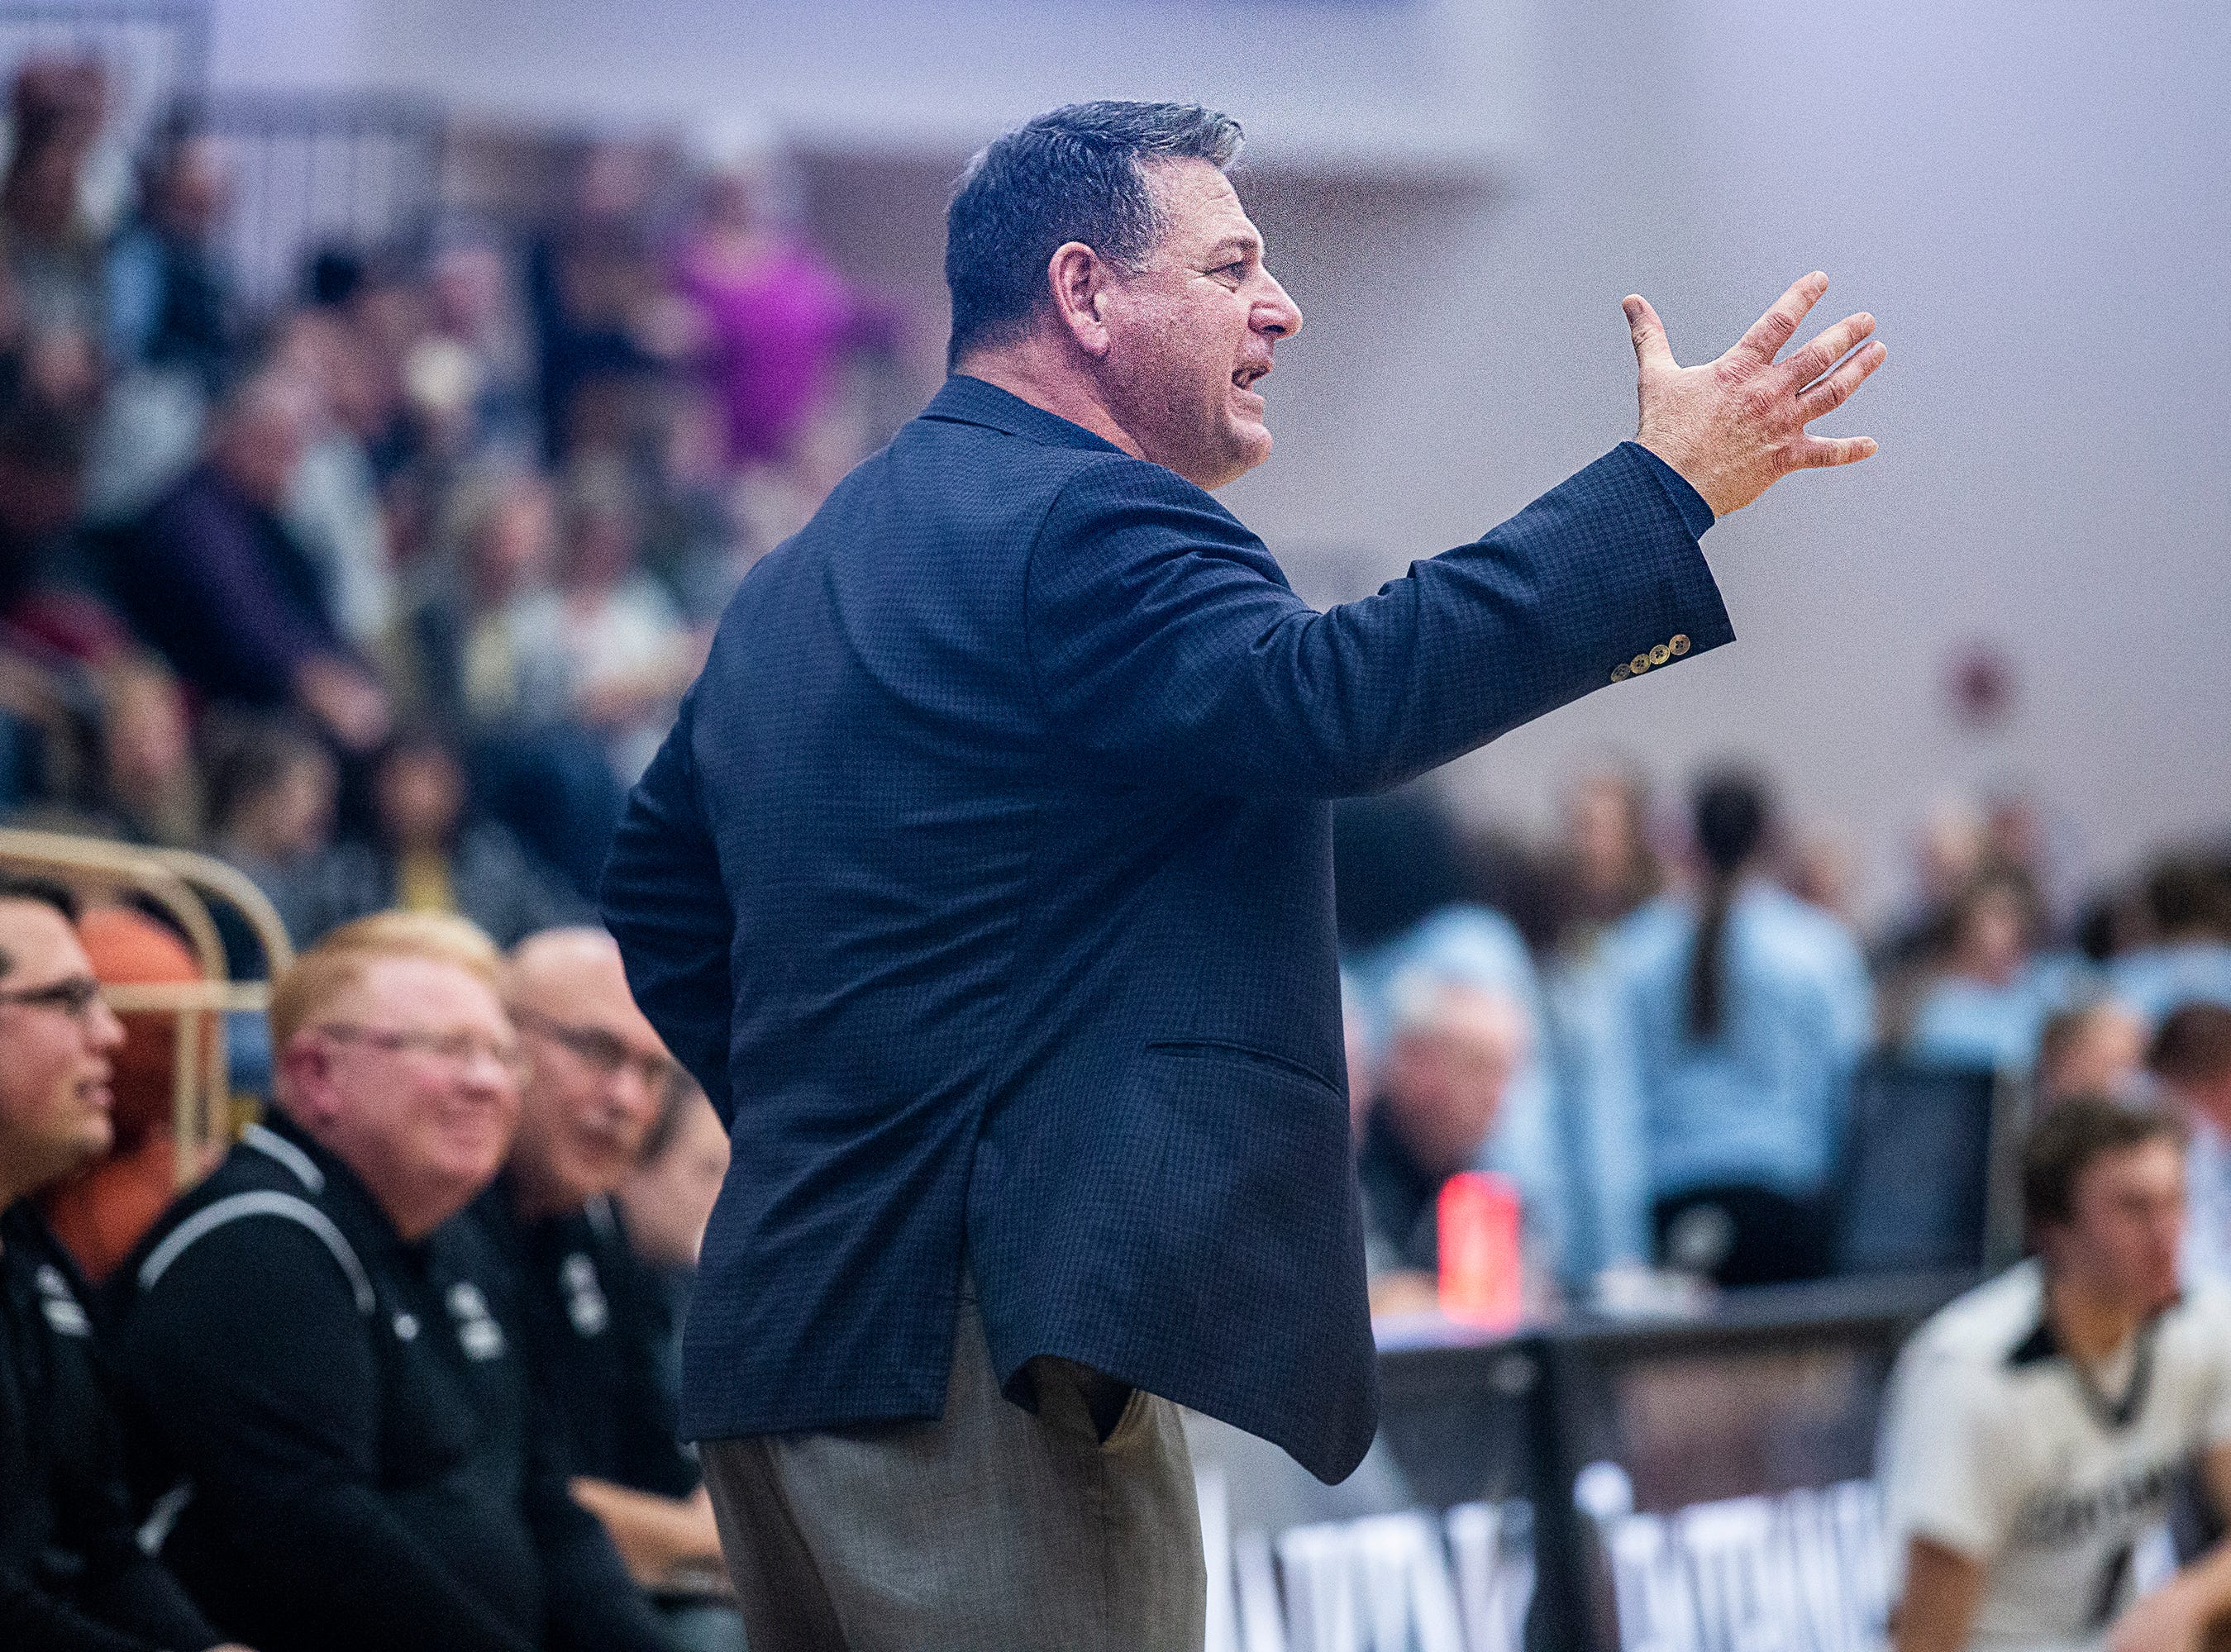 Centennial Coach Bob Fontana calls out to his team during the Southeast Polk vs. Ankeny Centennial boy's basketball game on Tuesday, Nov. 27, 2018, at Ankeny Centennial High School.